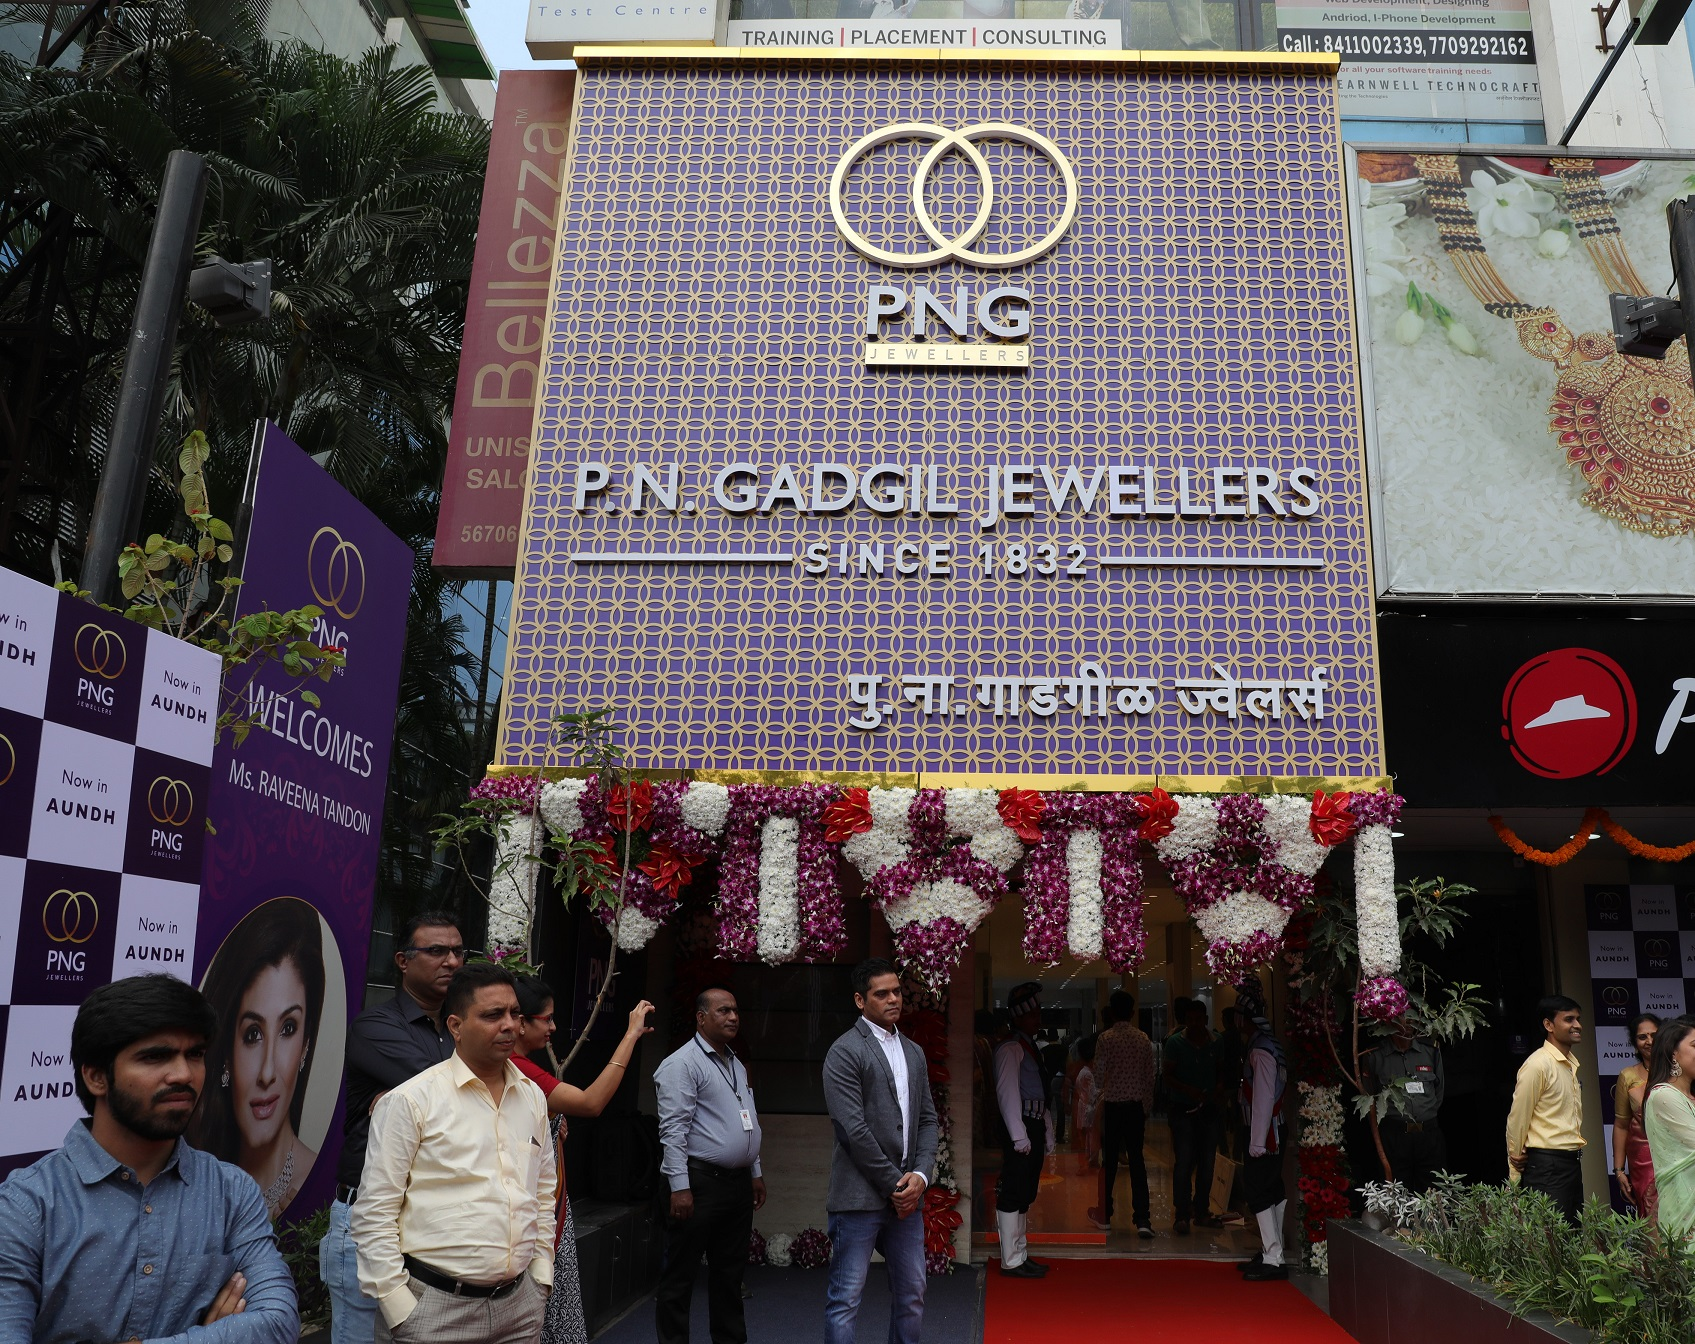 PNG Jewellers opens its first franchise store in Aundh, Pune.